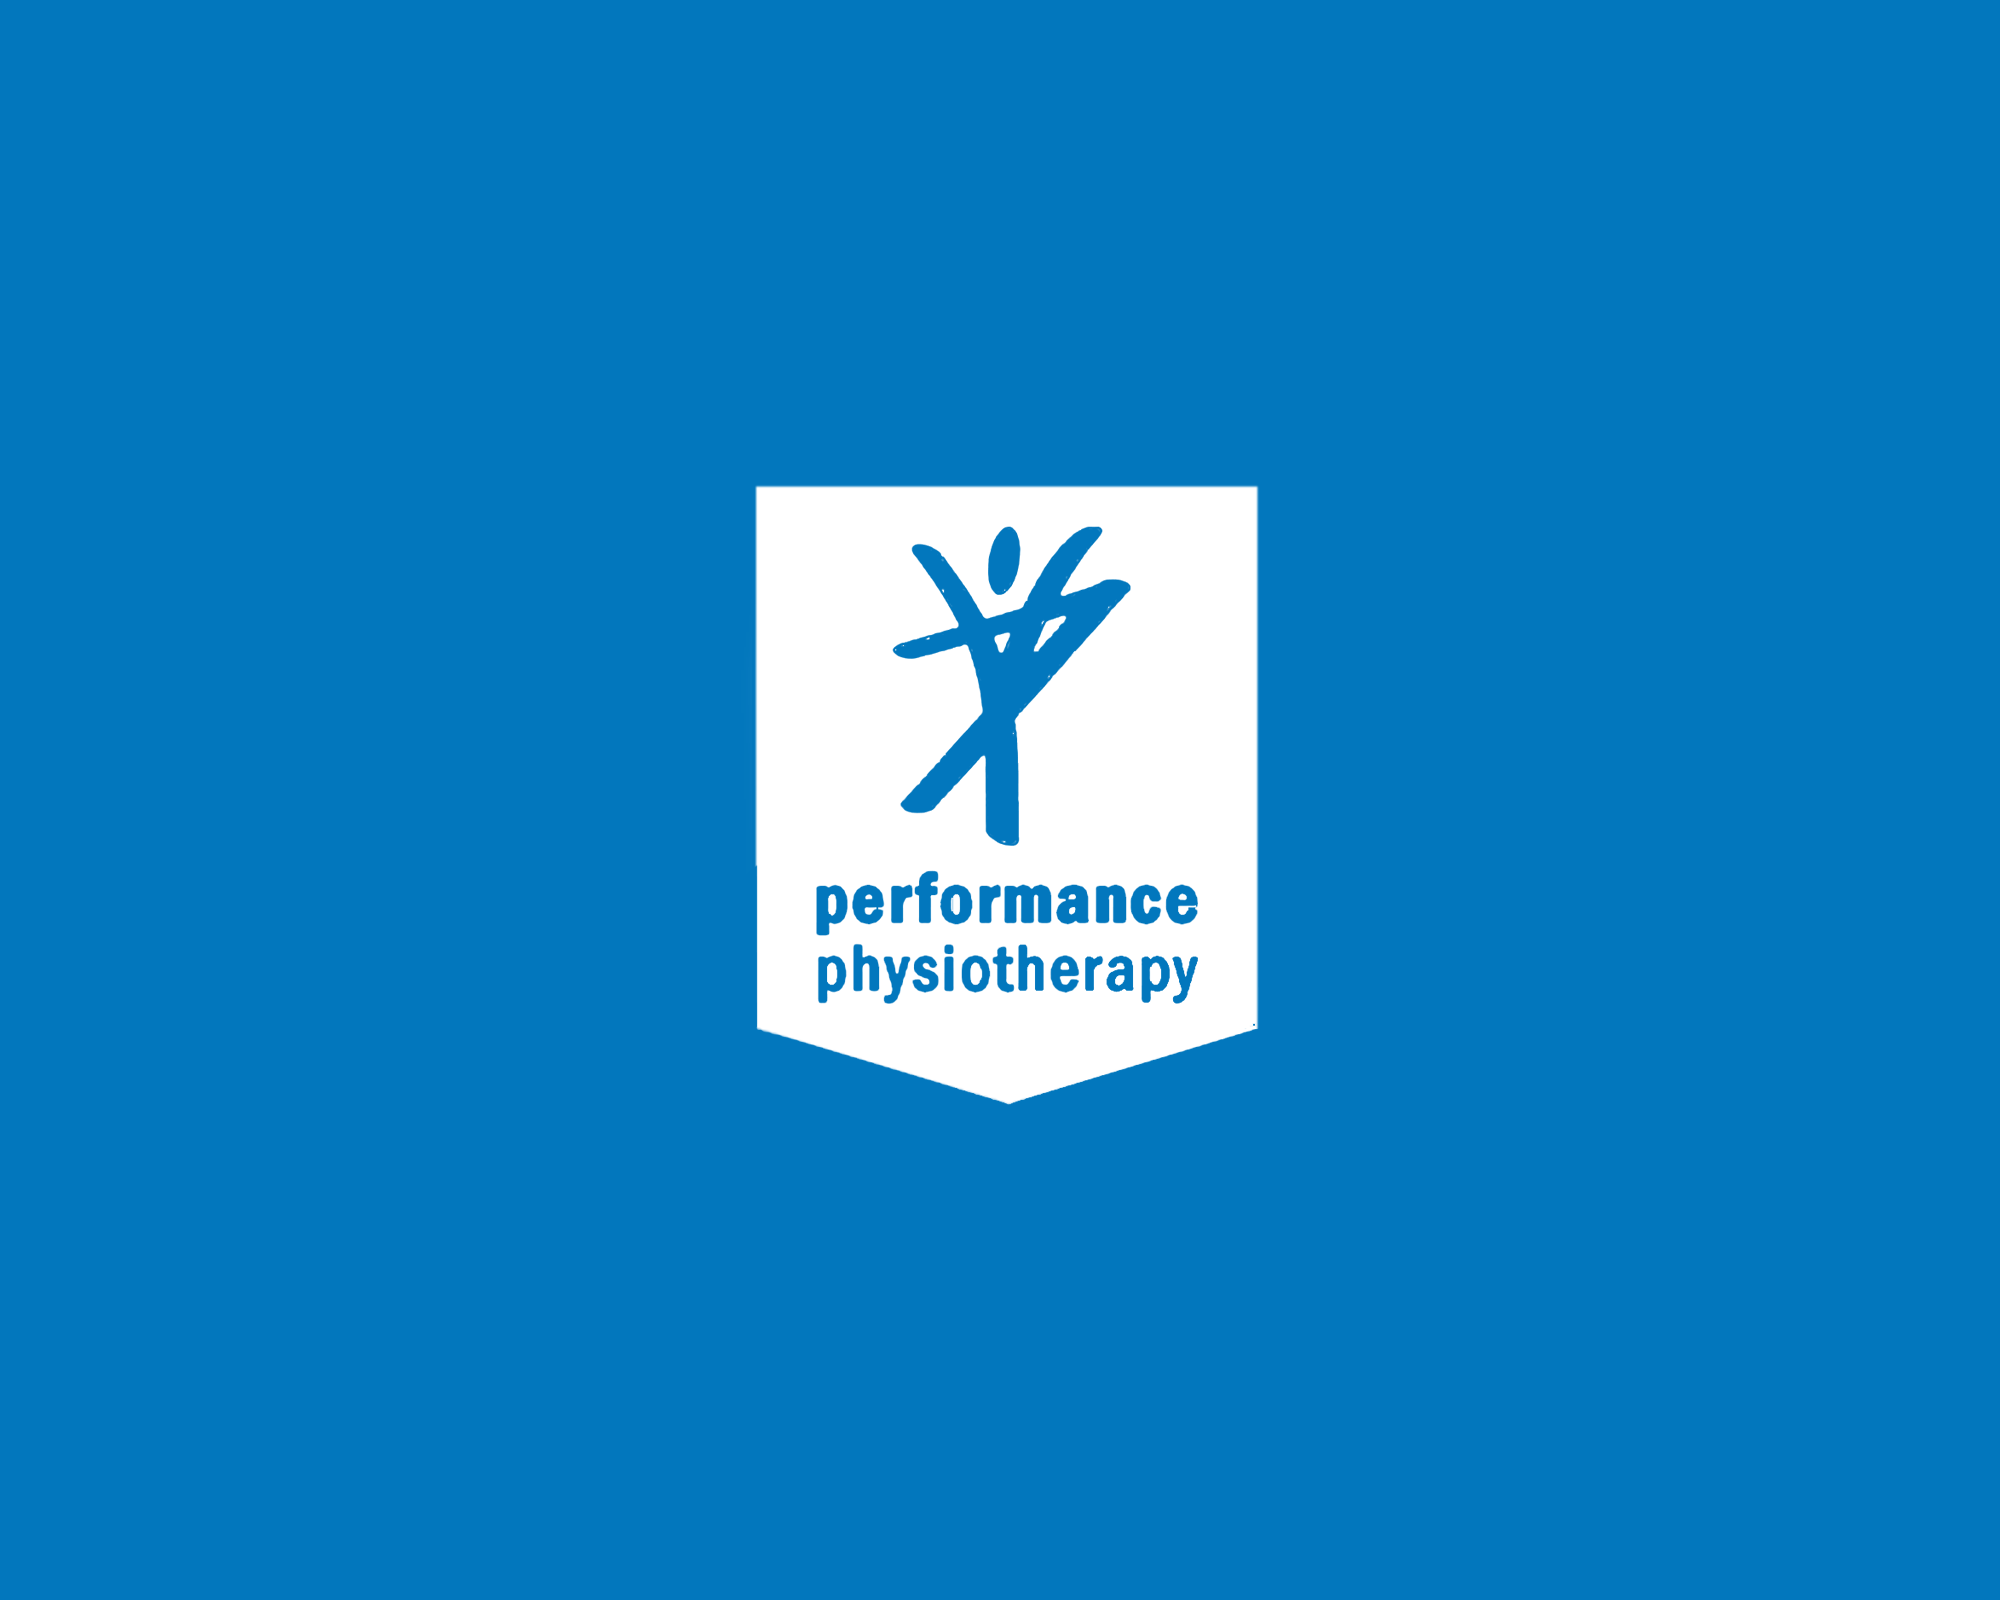 performance physiotherapy Logo